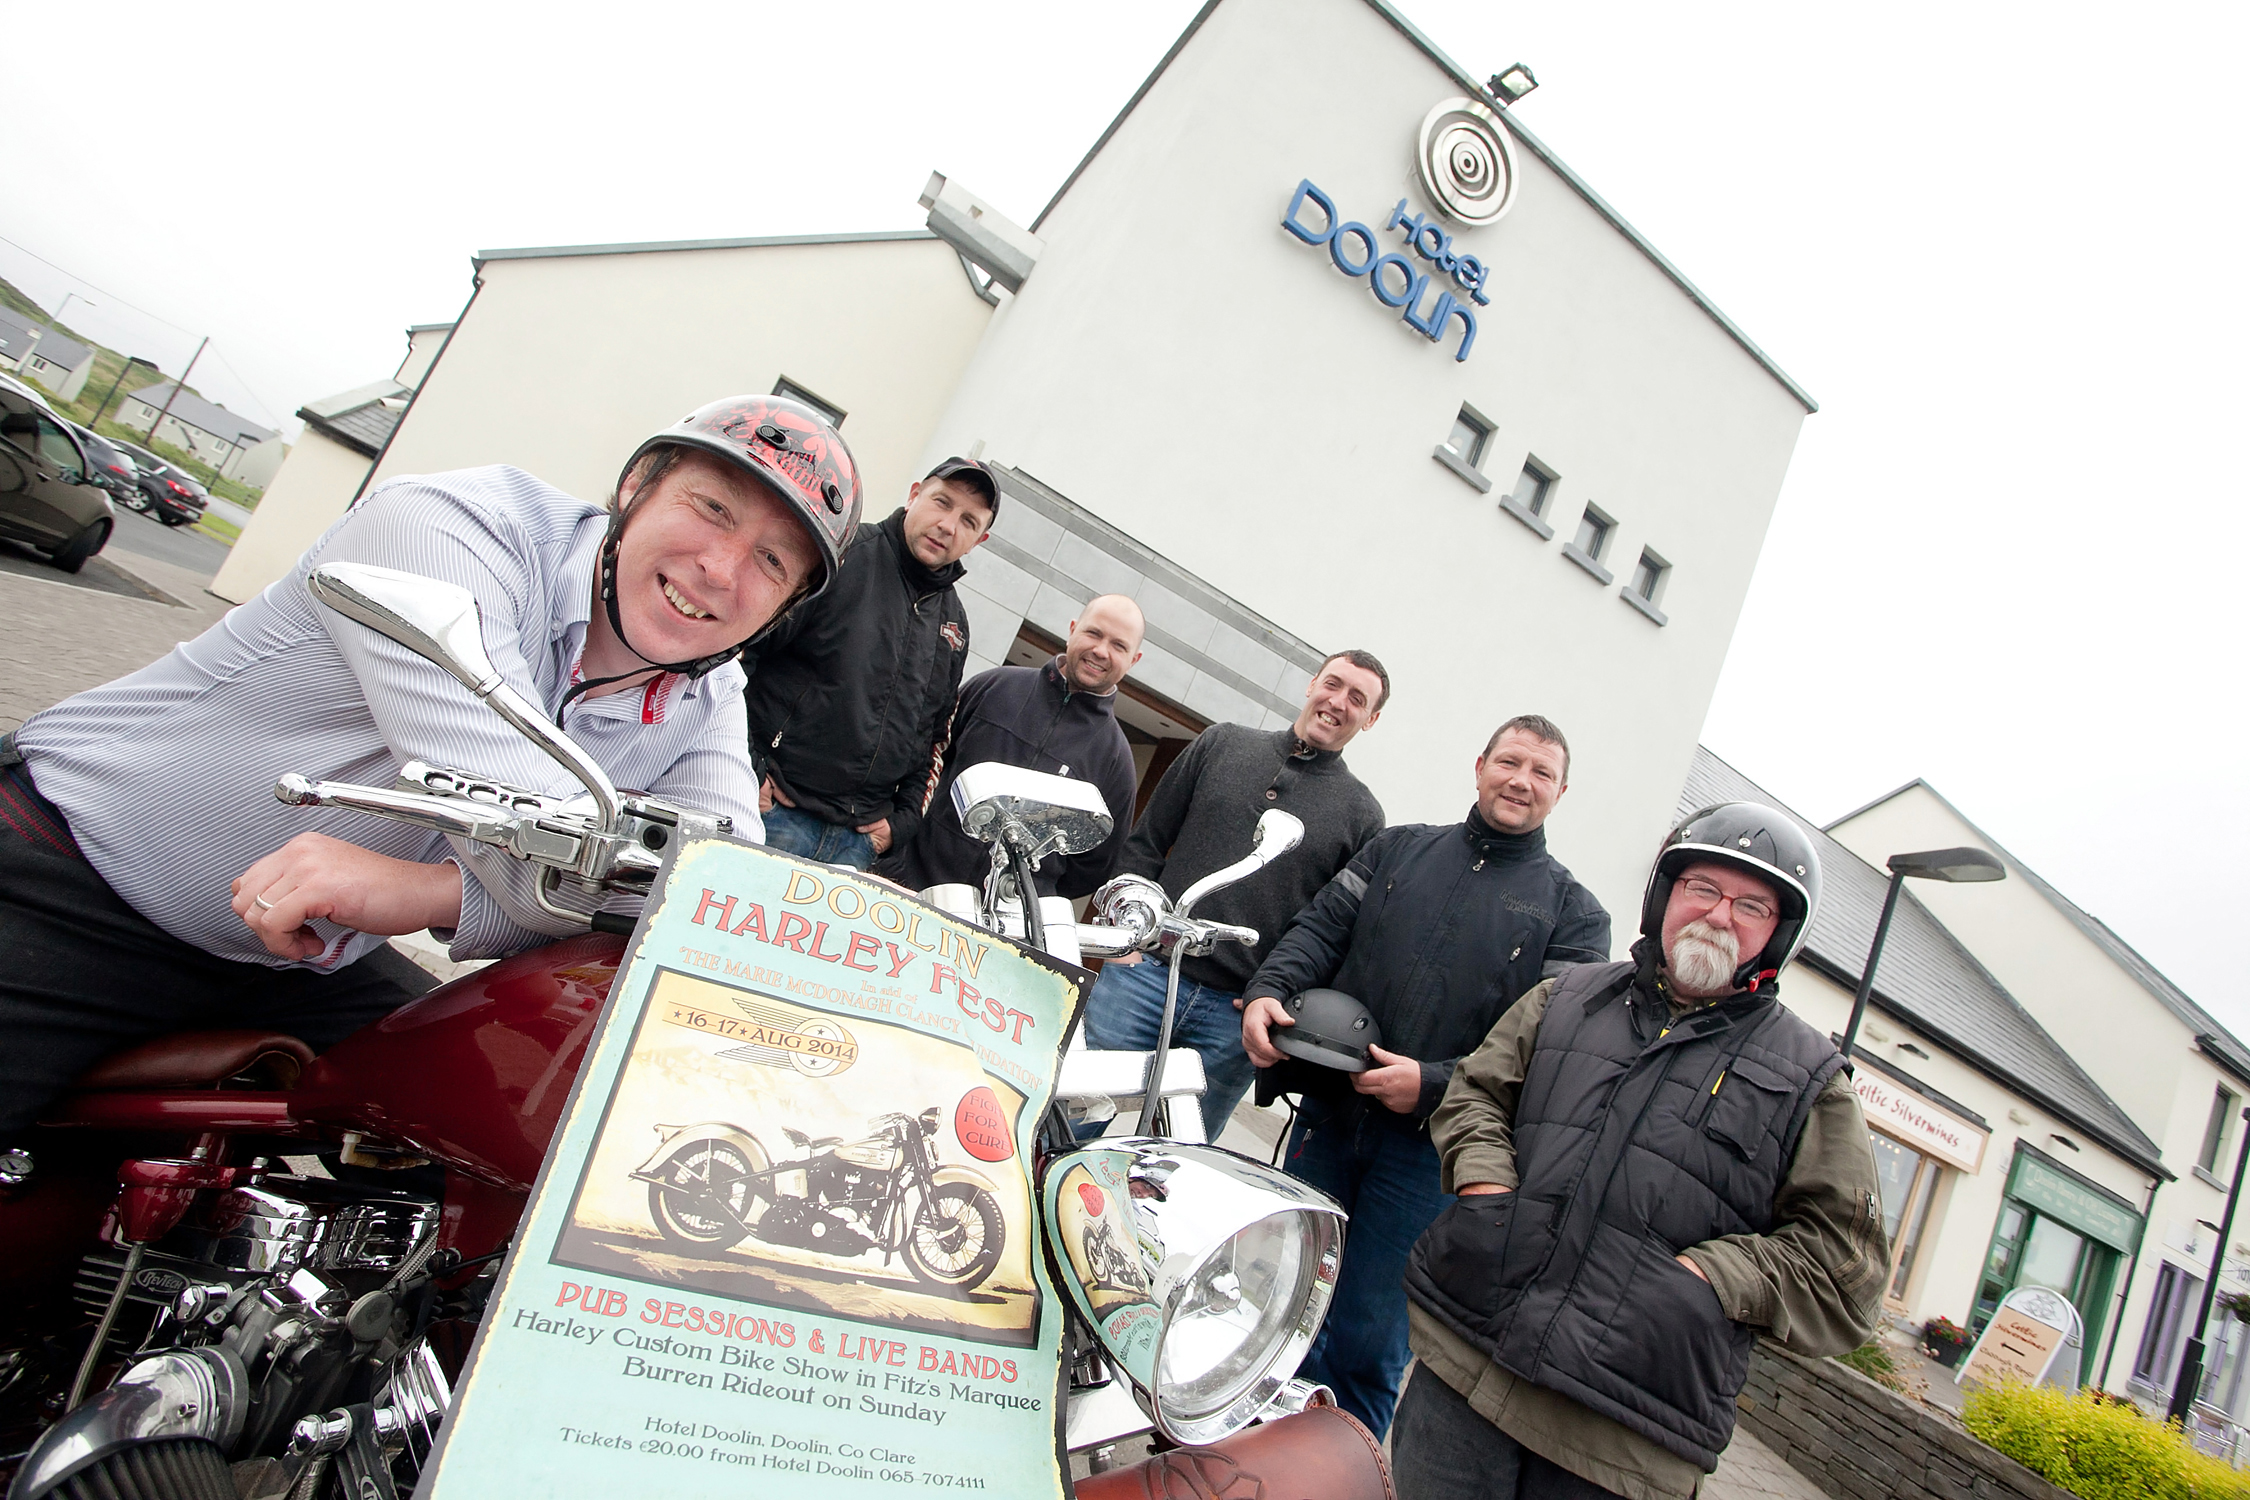 Donal Minihan-general manger of Hotel Doolin gets a feel for the wheels with organisers Mark Clancy, John Clancy, John McDonagh, James Clancy and Jimmy Boyle ahead of the Doolin Harley Fest on 16th and 17th of August in aid of the Marie McDonagh Clancy Foundation. Photograph by Yvonne Vaughan